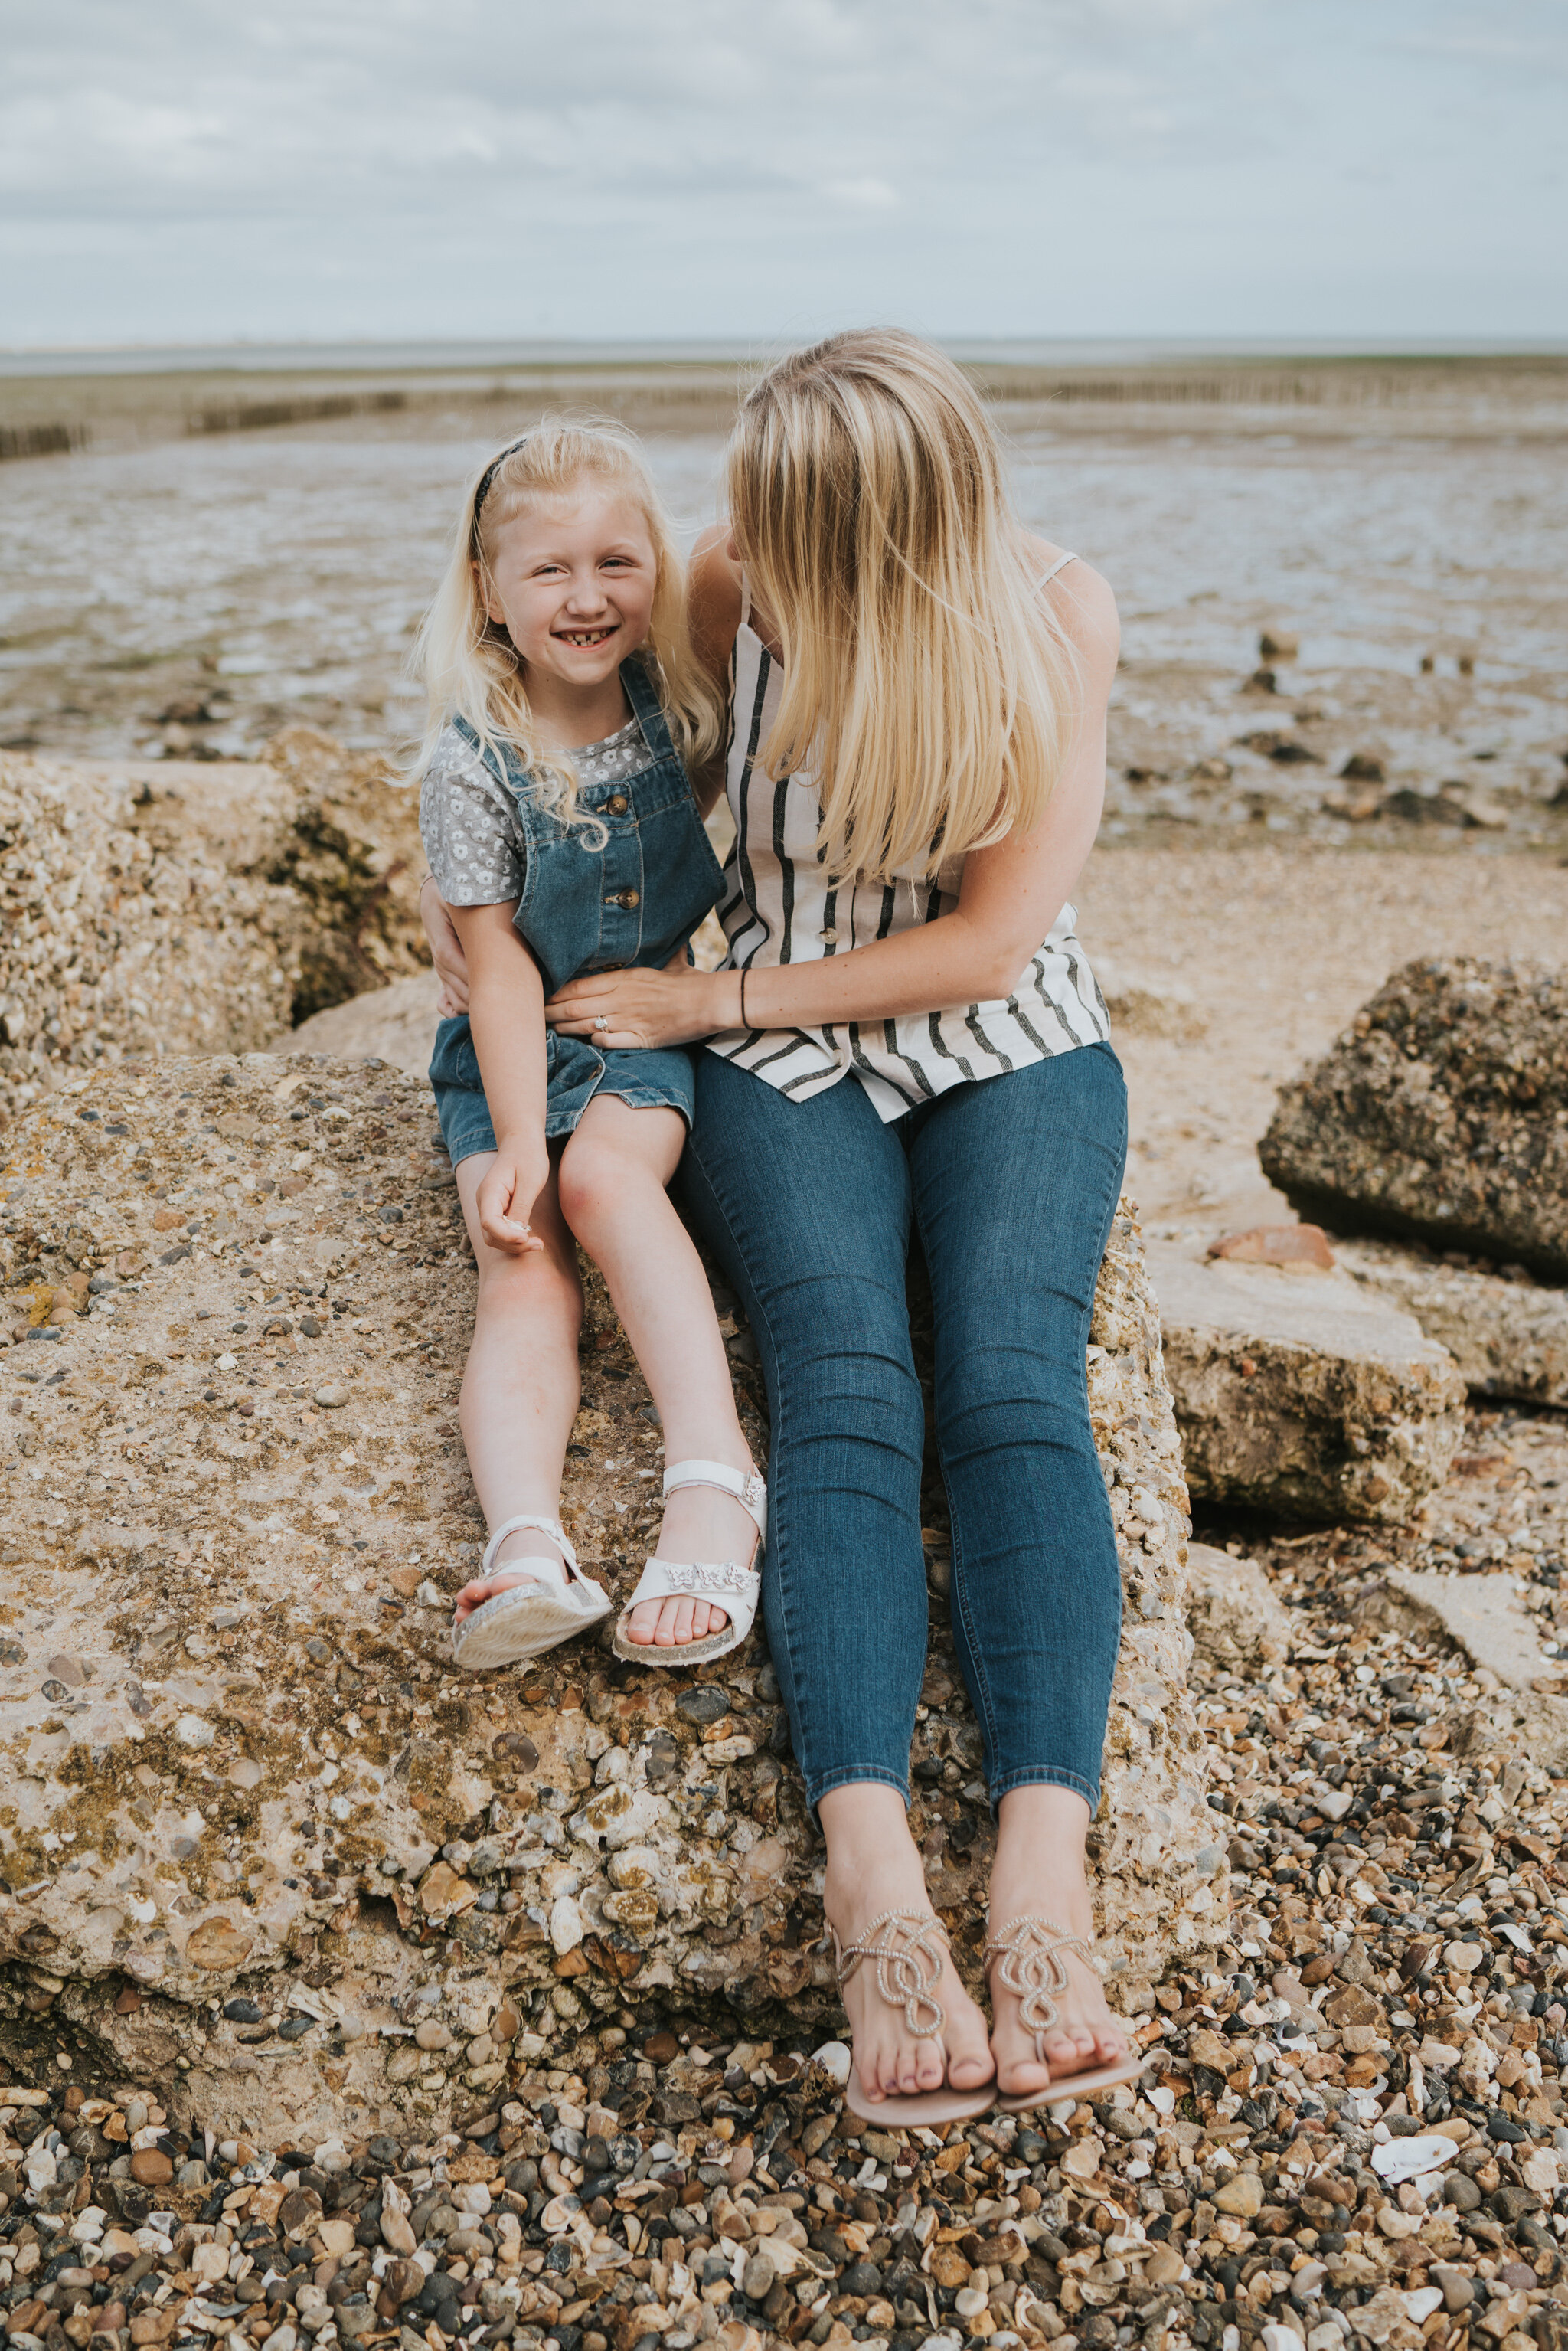 celebratory-beach-family-session-thomson-family-cudmore-grove-east-mersea-grace-elizabeth-colchester-essex-devon-suffolk-and-norfolk-alternative-wedding-and-family-photographer (8 of 53).jpg